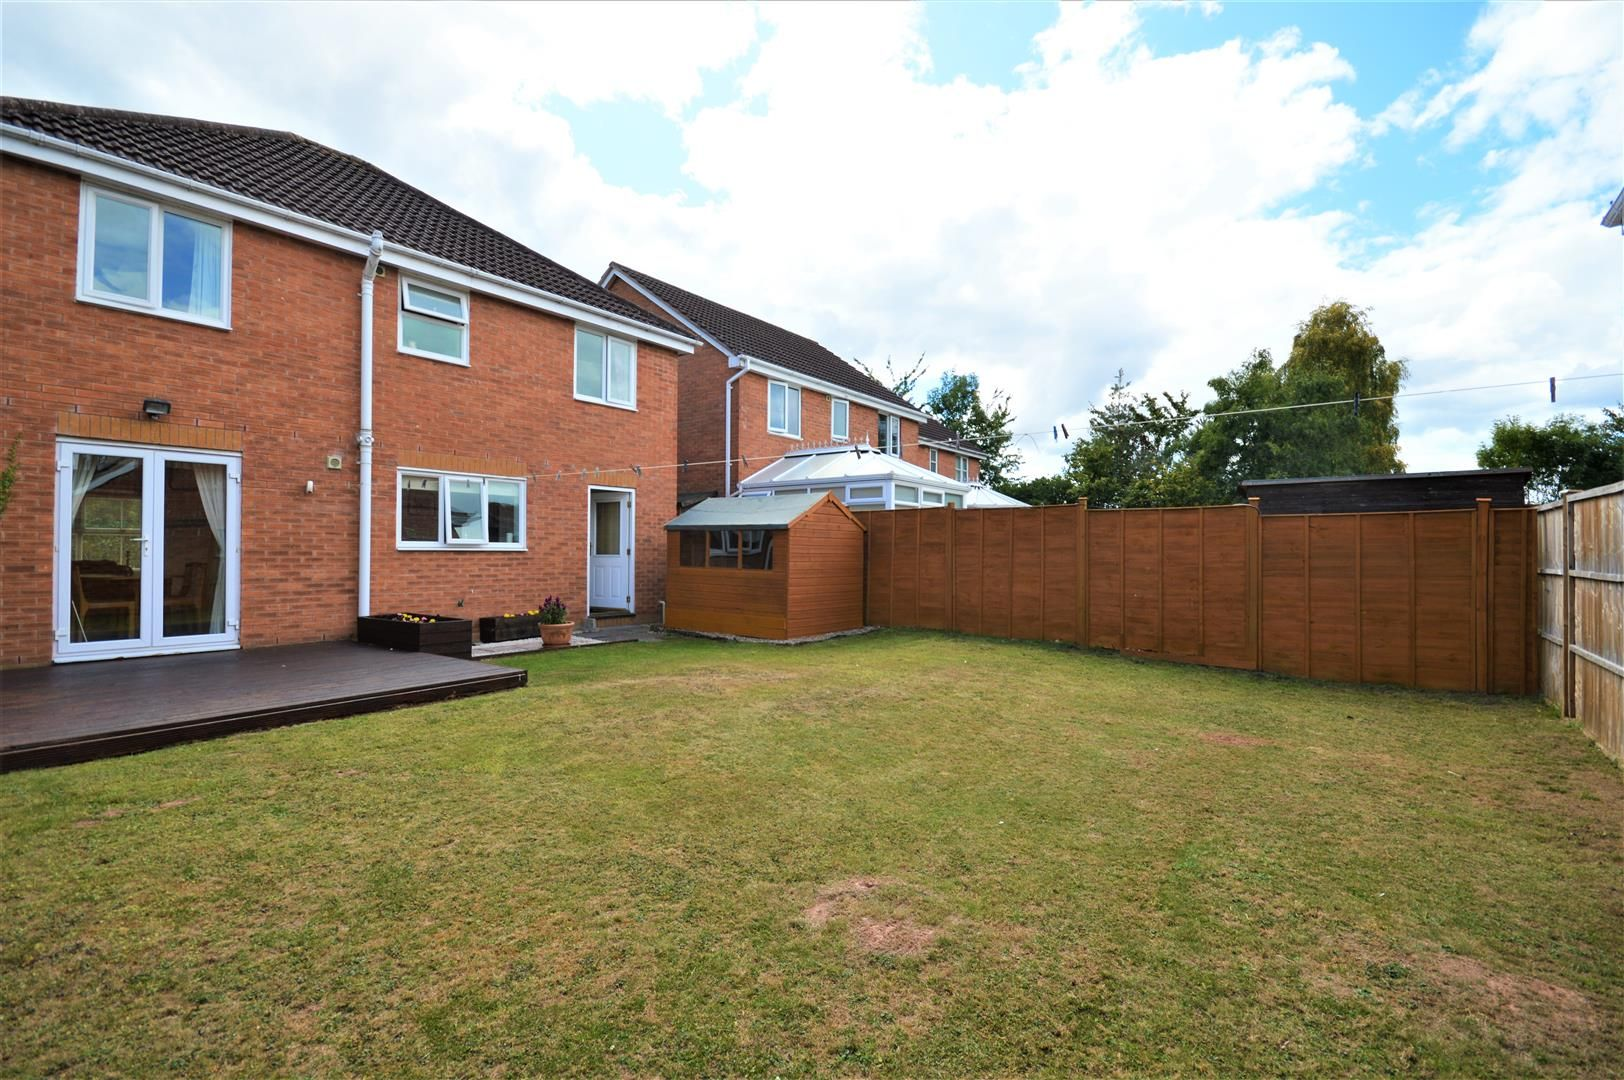 4 bed detached for sale in Belmont 13